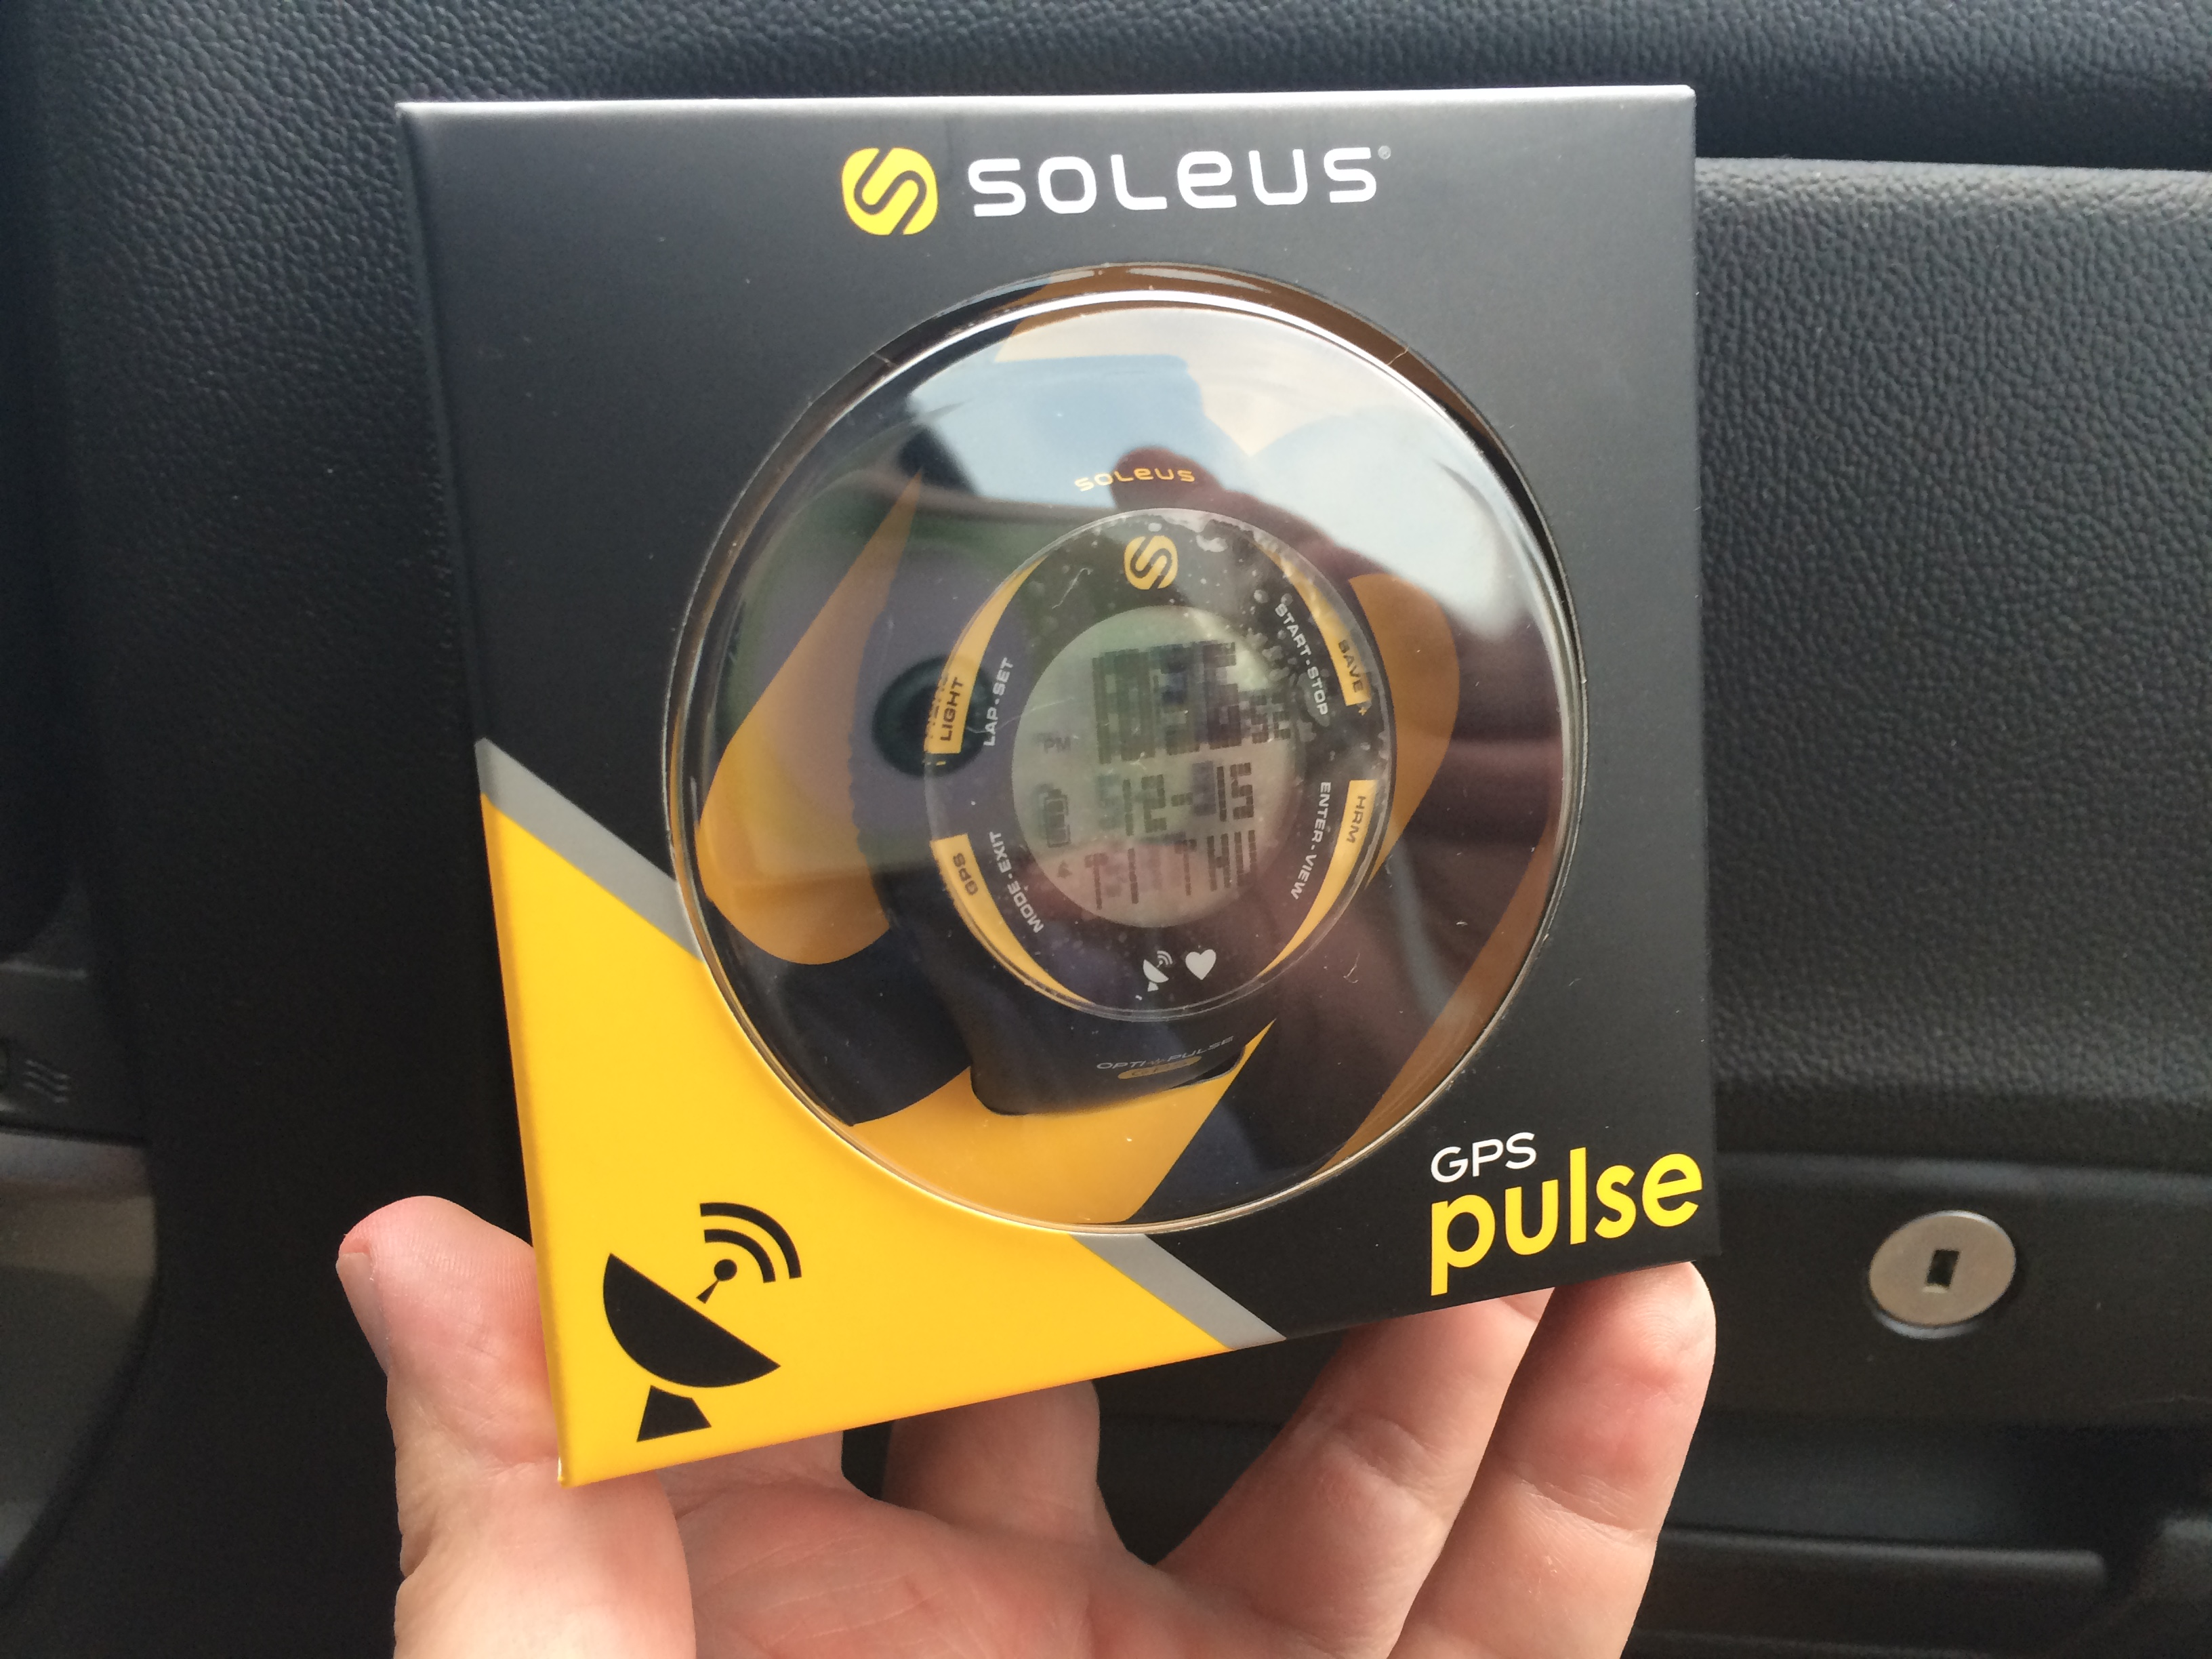 Soleus GPS Pulse Watch: Freeing Runners